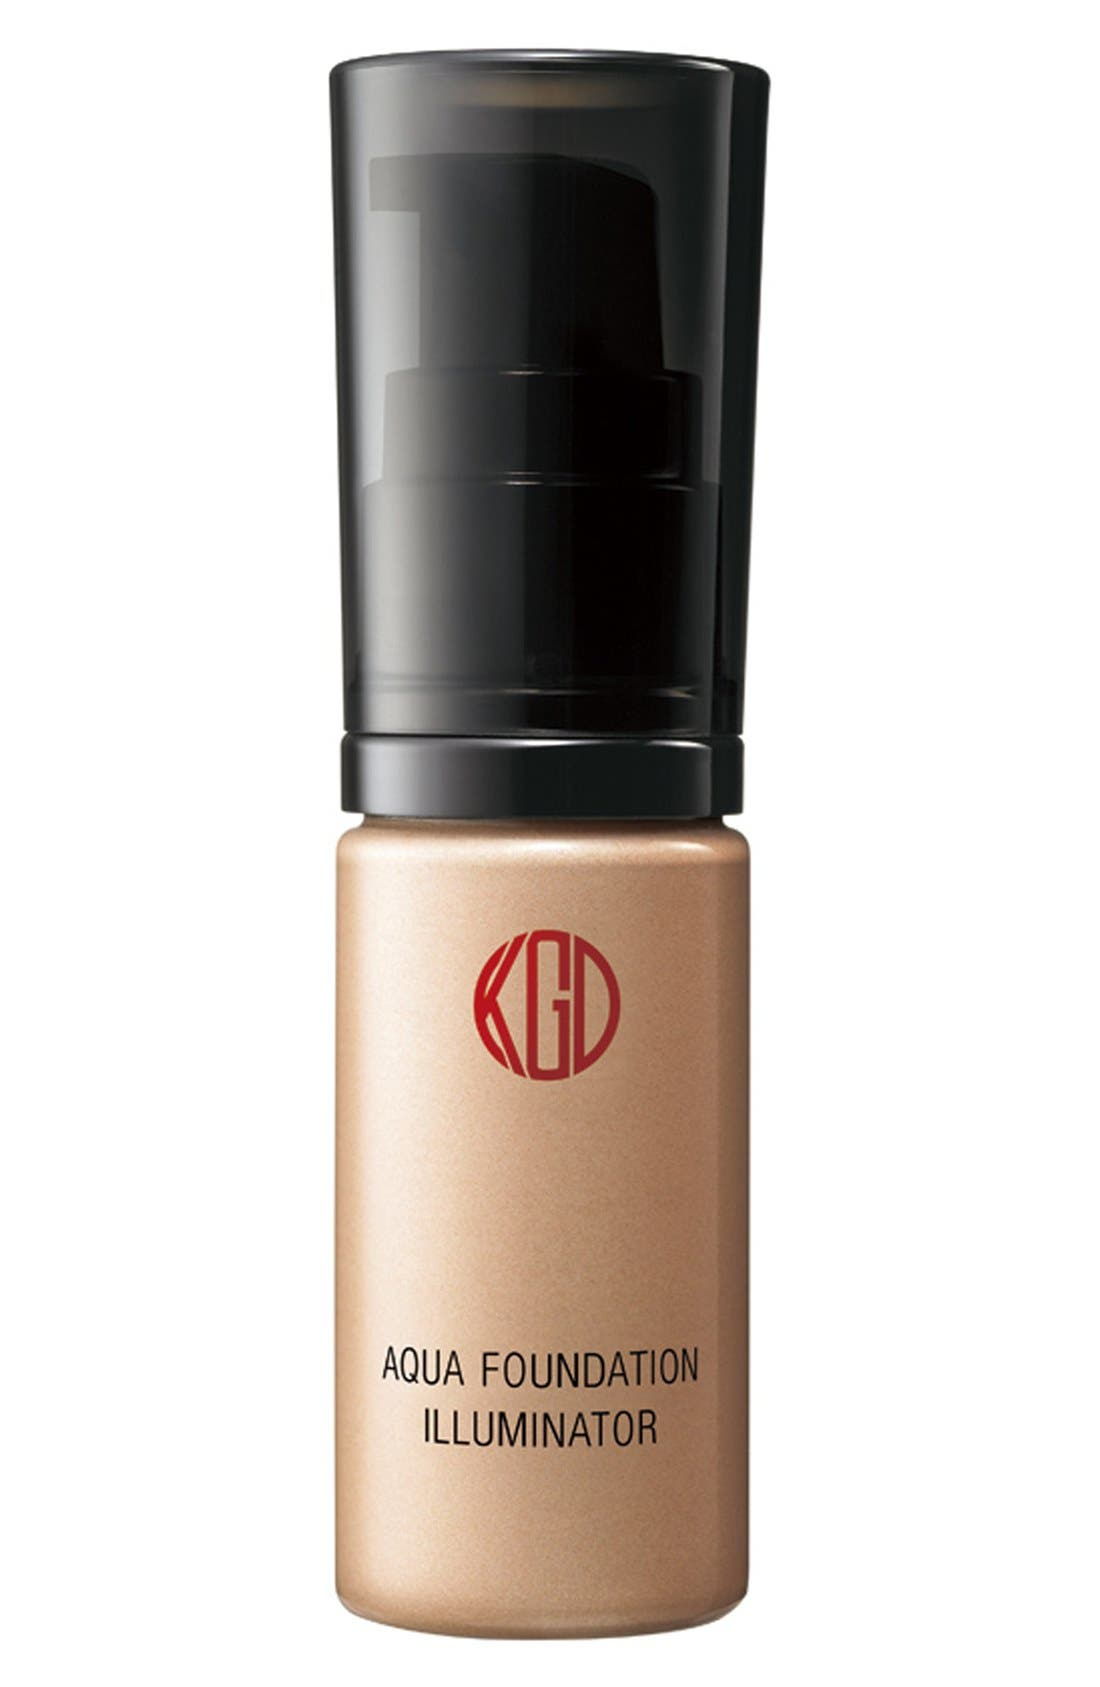 Koh Gen Do 'Aqua' Foundation Illuminator